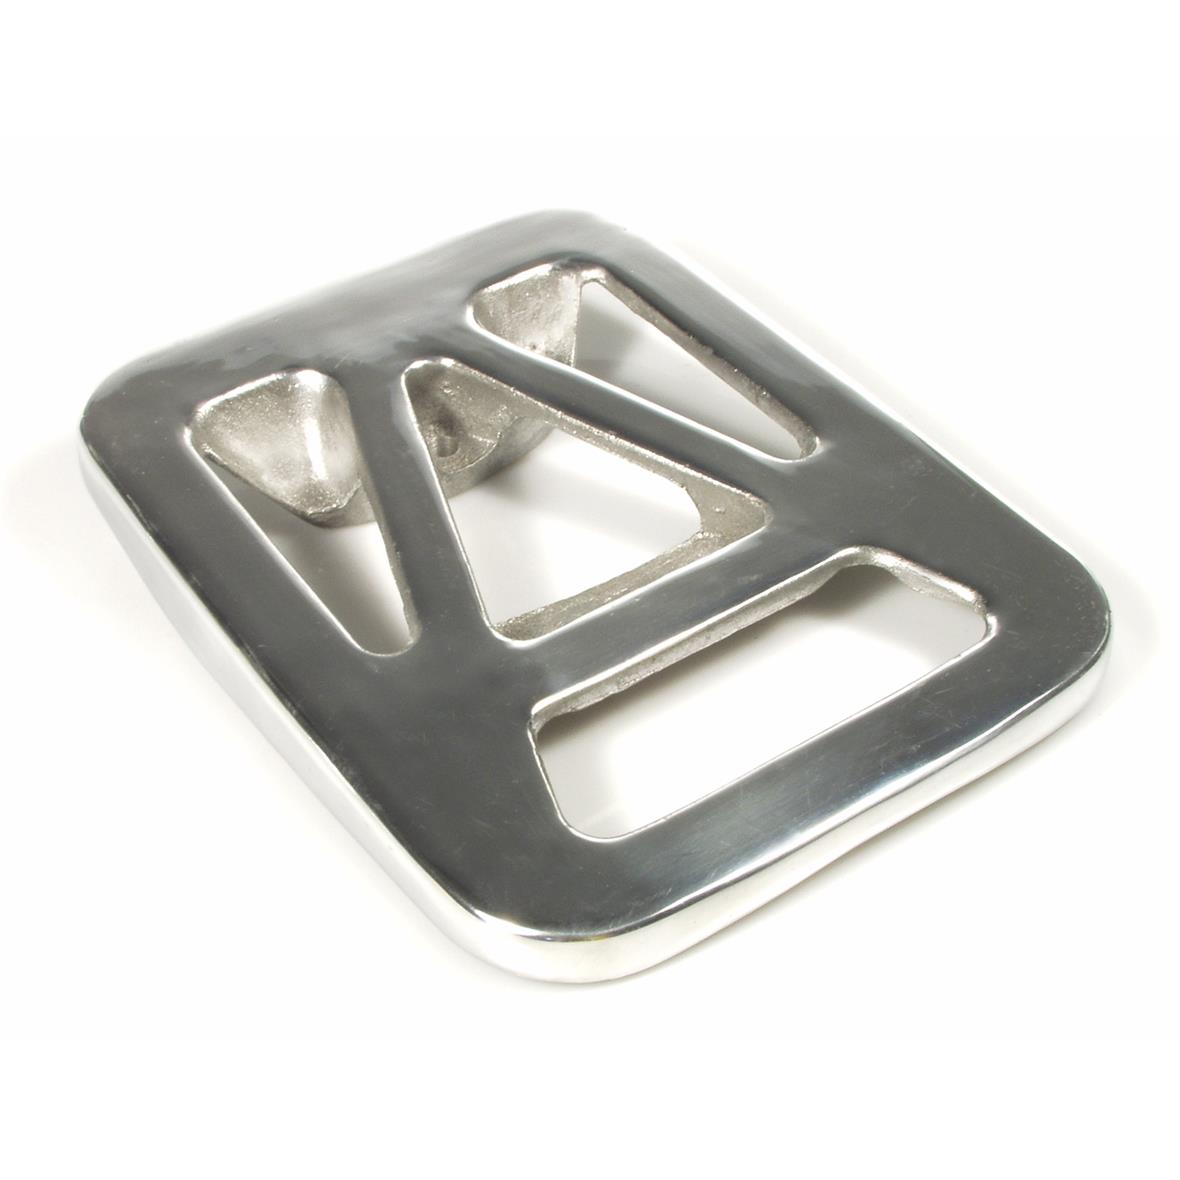 Product Image for 'Luggage Rack mono seatTitle'